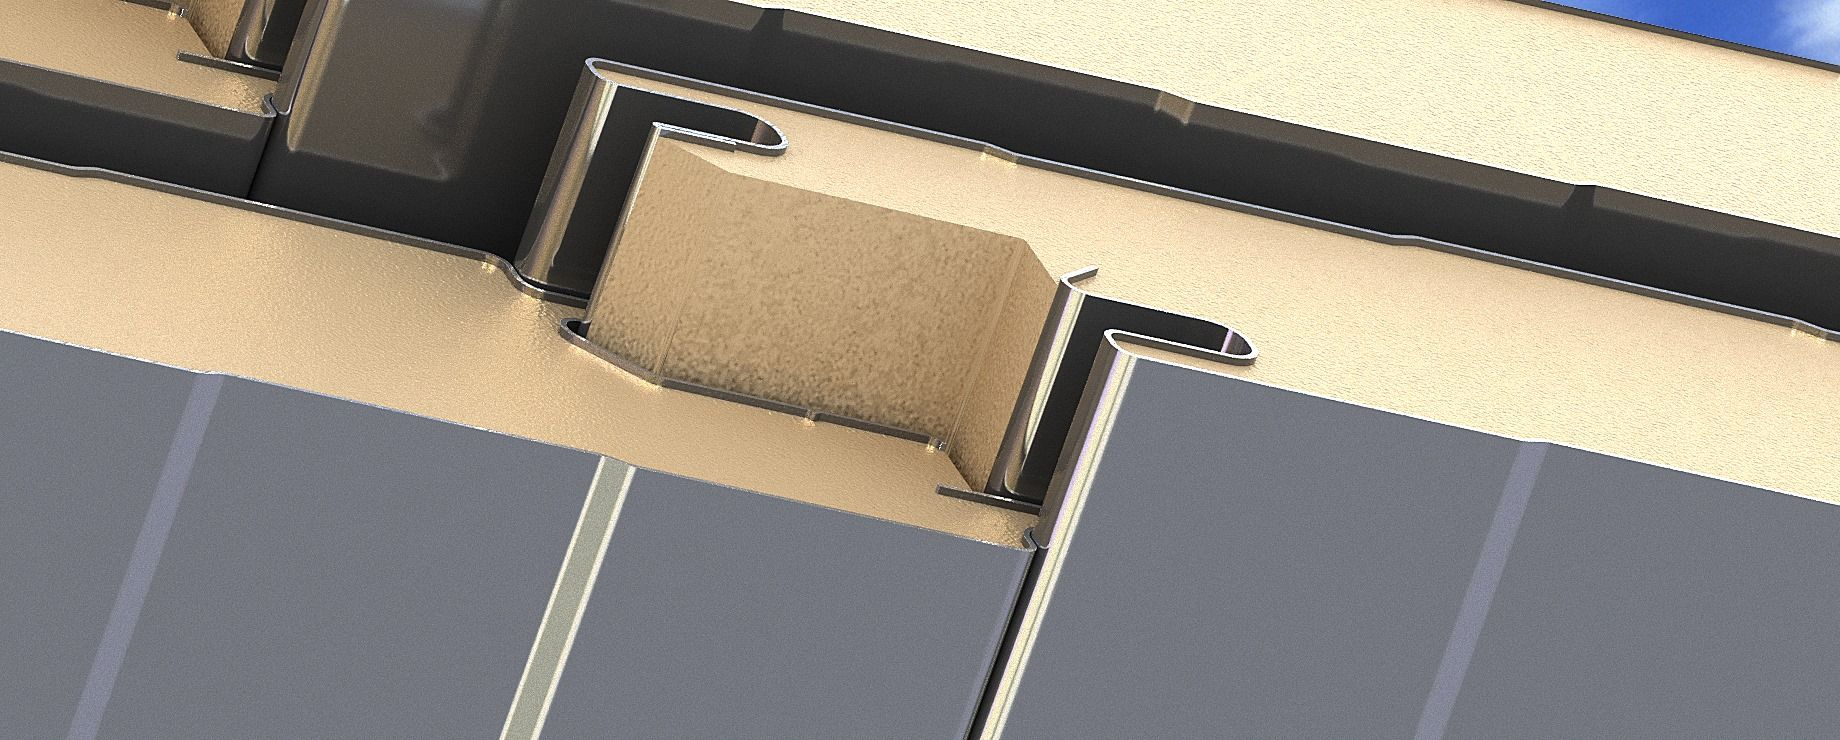 Tongue And Groove Joint Of Awip Panels Ensure Integrity Of A Building S Thermal Envelope Insulated Panels Paneling Roof Panels